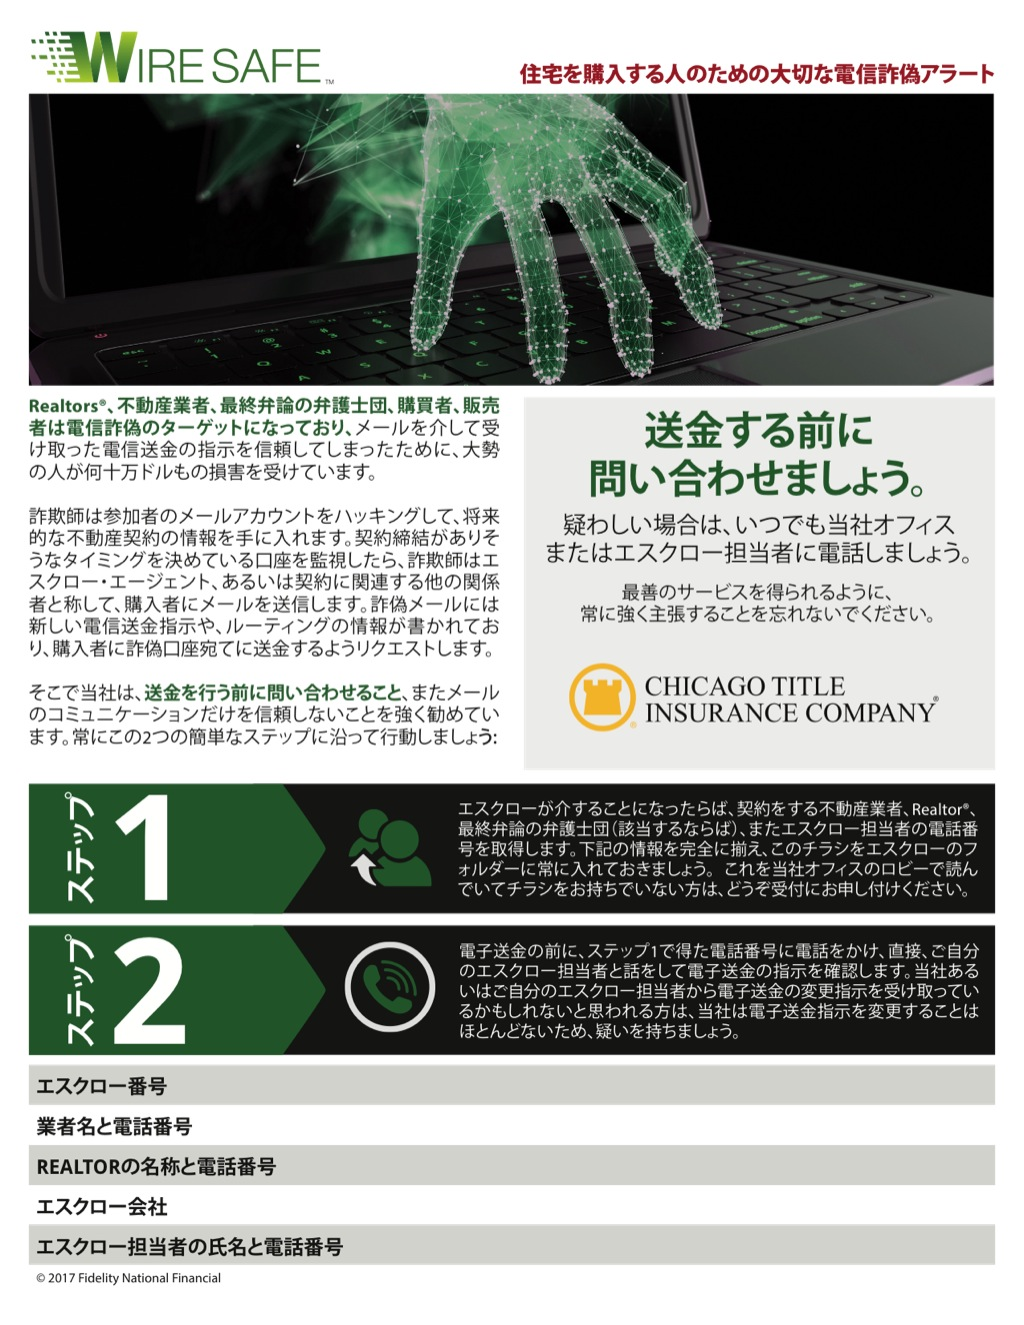 Corefact Wire Safe Buyer Flyer - Japanese - CTIC